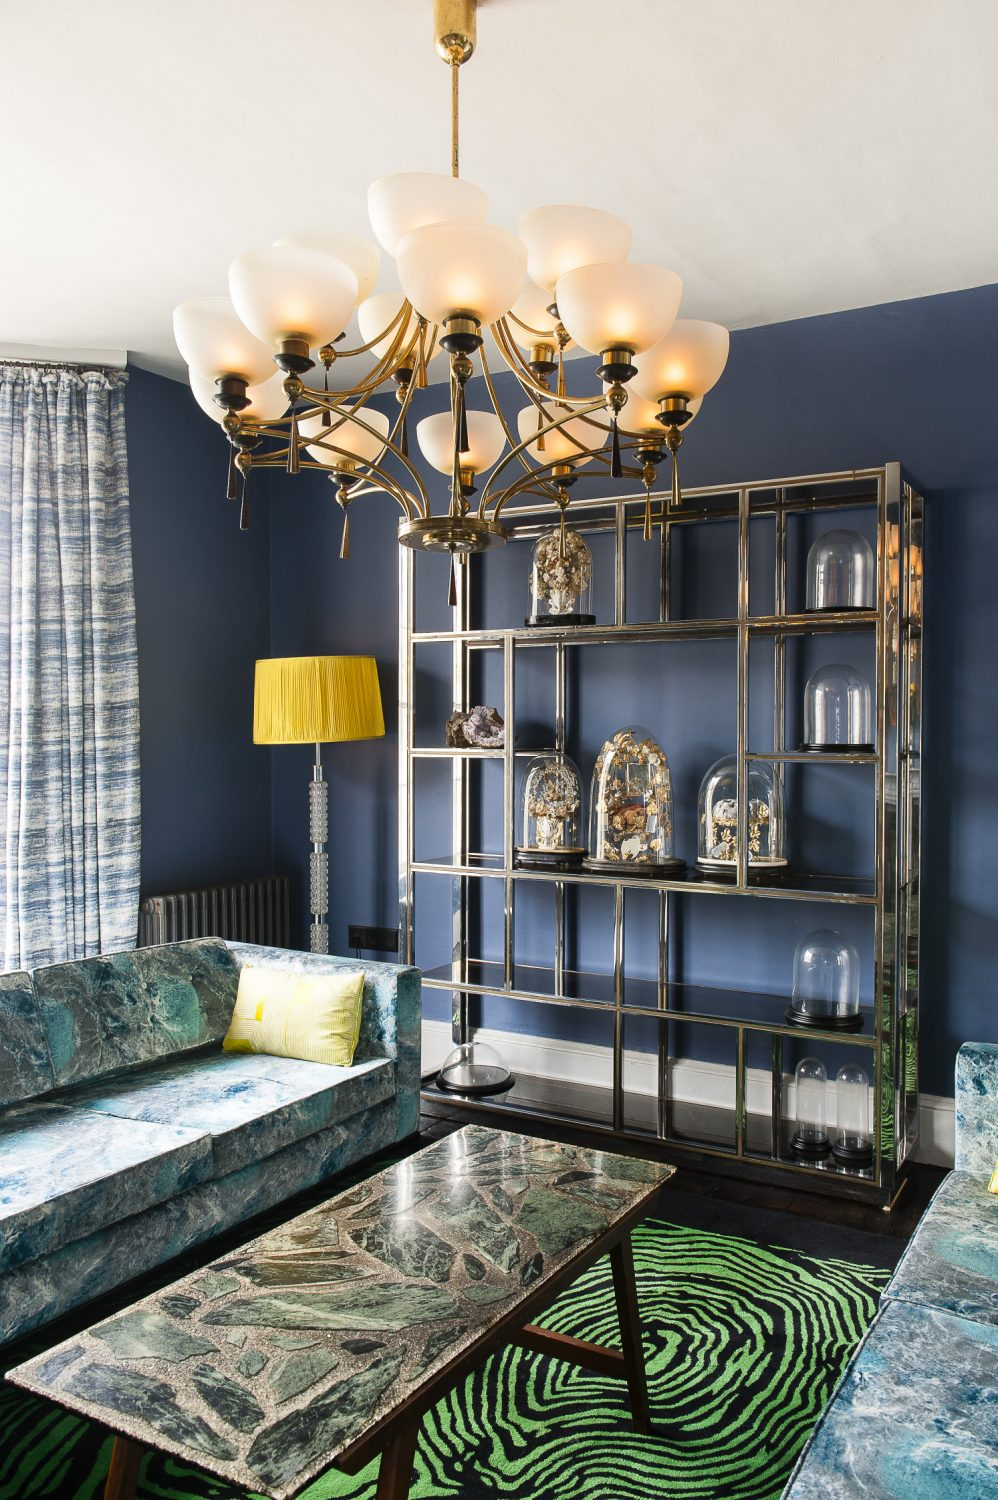 A 20th century vintage chrome shelving unit houses a collection of vintage French dômes du mariage